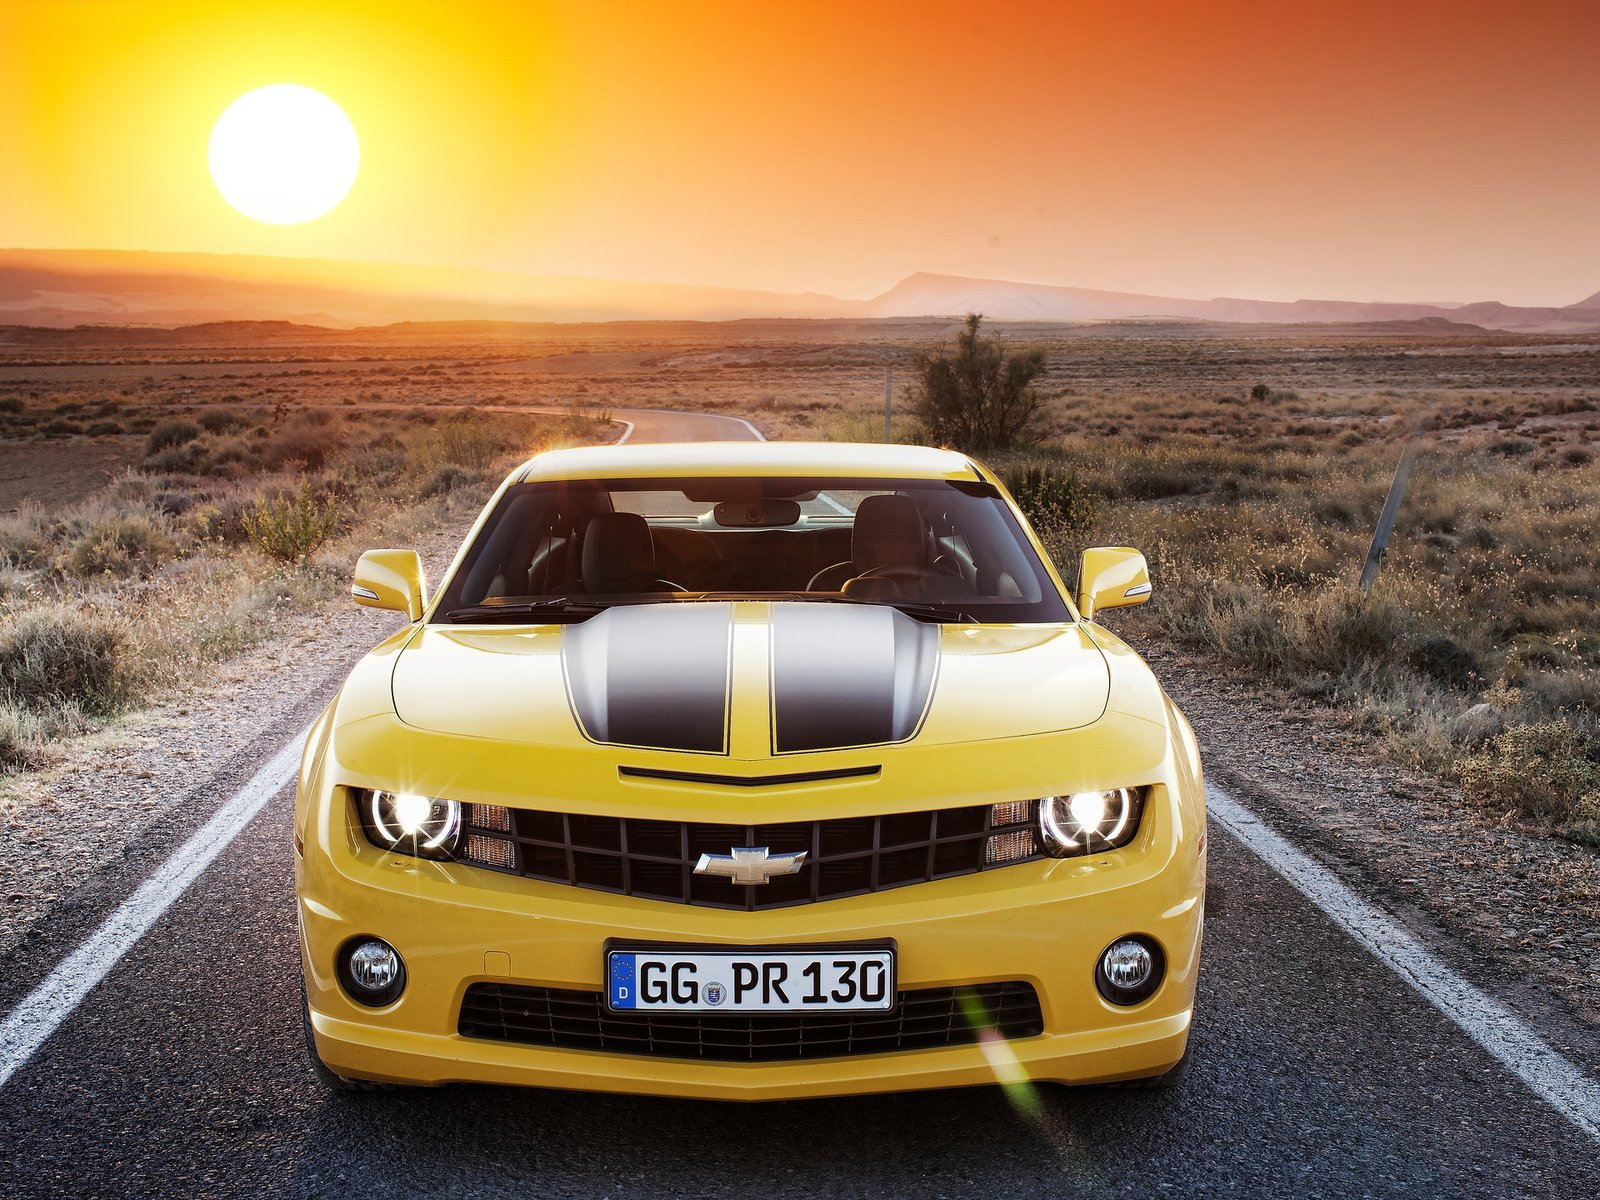 Chevrolet Camaro Wallpaper And Background Image 1600x1200